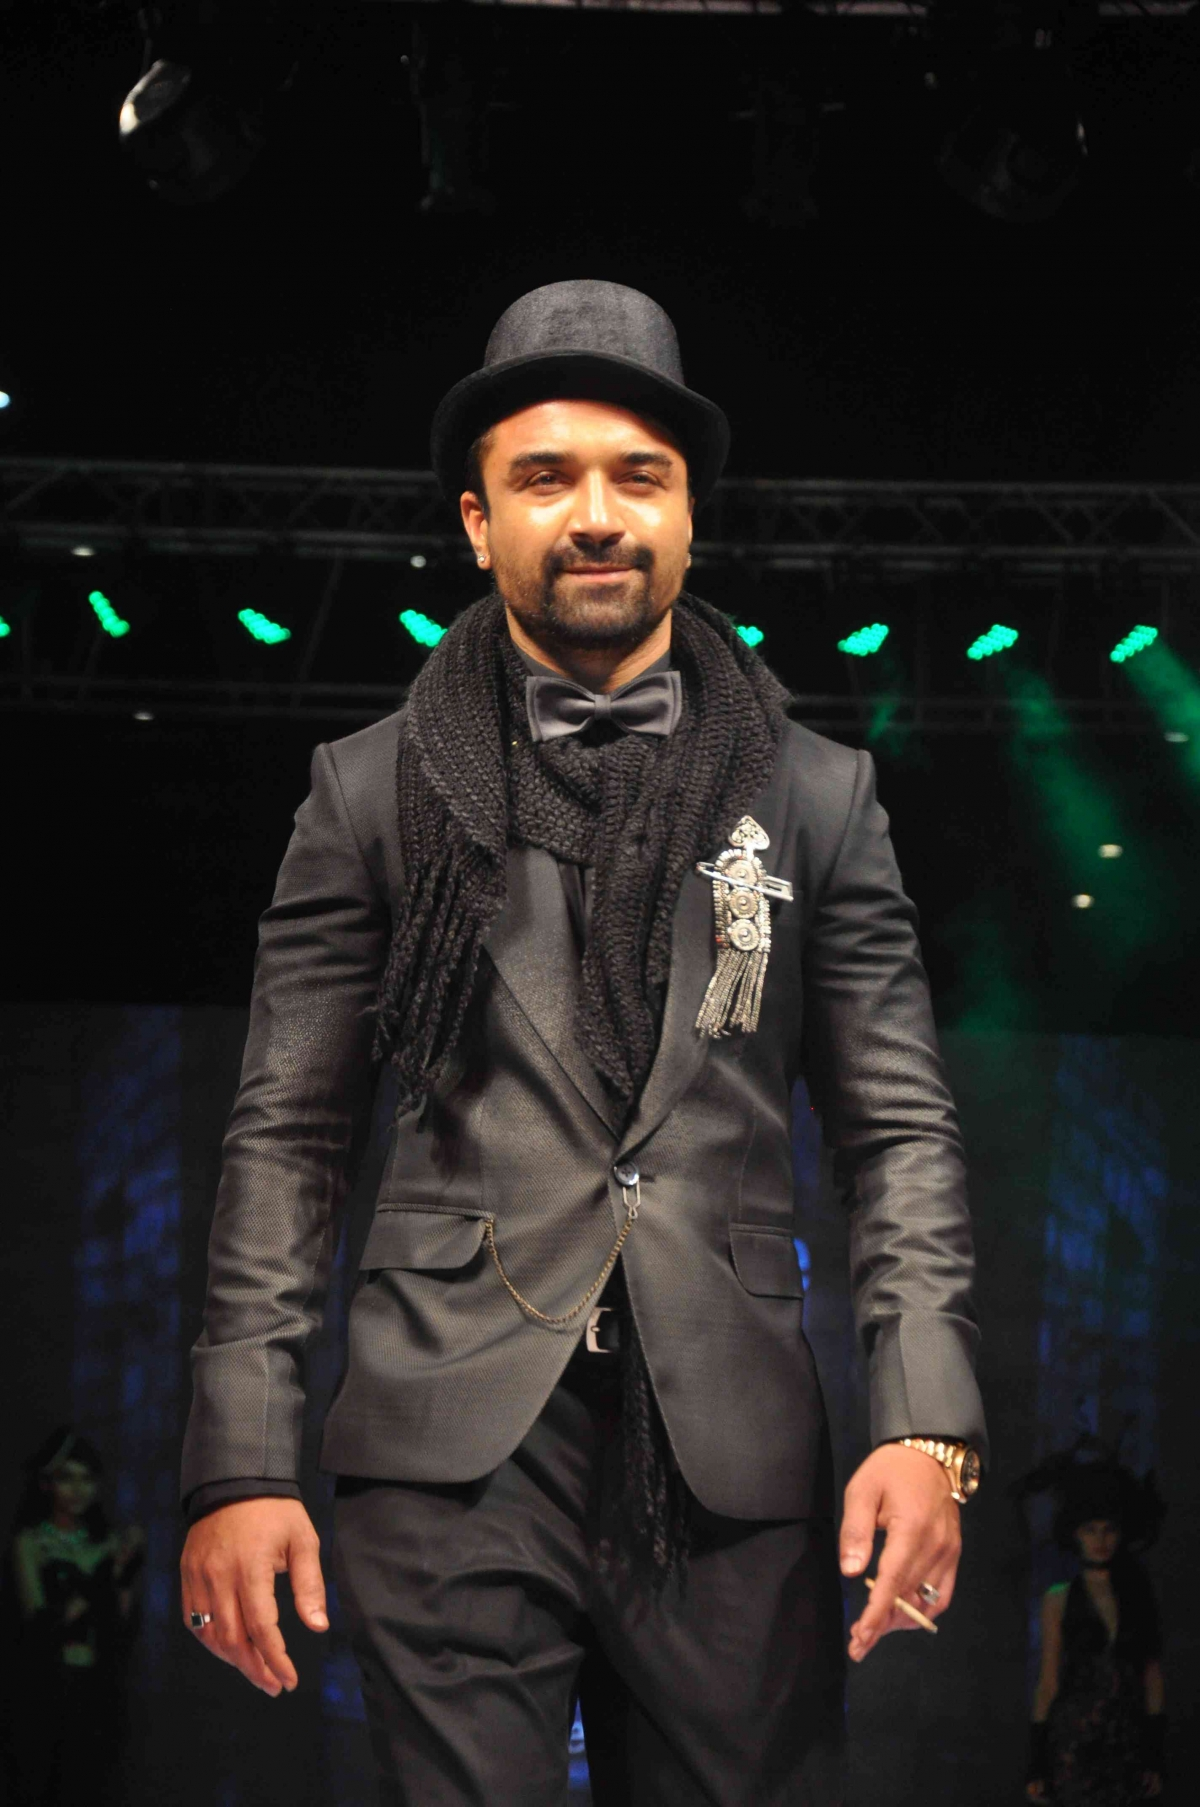 ajaz khan wife nameajaz khan wiki, ajaz khan youtube, ajaz khan in comedy nights with kapil, ajaz khan instagram, ajaz khan, ajaz khan wife, ajaz khan height, ajaz khan wikipedia, ajaz khan twitter, ajaz khan facebook, ajaz khan dialogues, ajaz khan kapil sharma, ajaz khan age, ajaz khan upcoming movies, ajaz khan shayari, ajaz khan biography, ajaz khan bigg boss 8, ajaz khan oscar, ajaz khan wife name, ajaz khan bigg boss dialogues